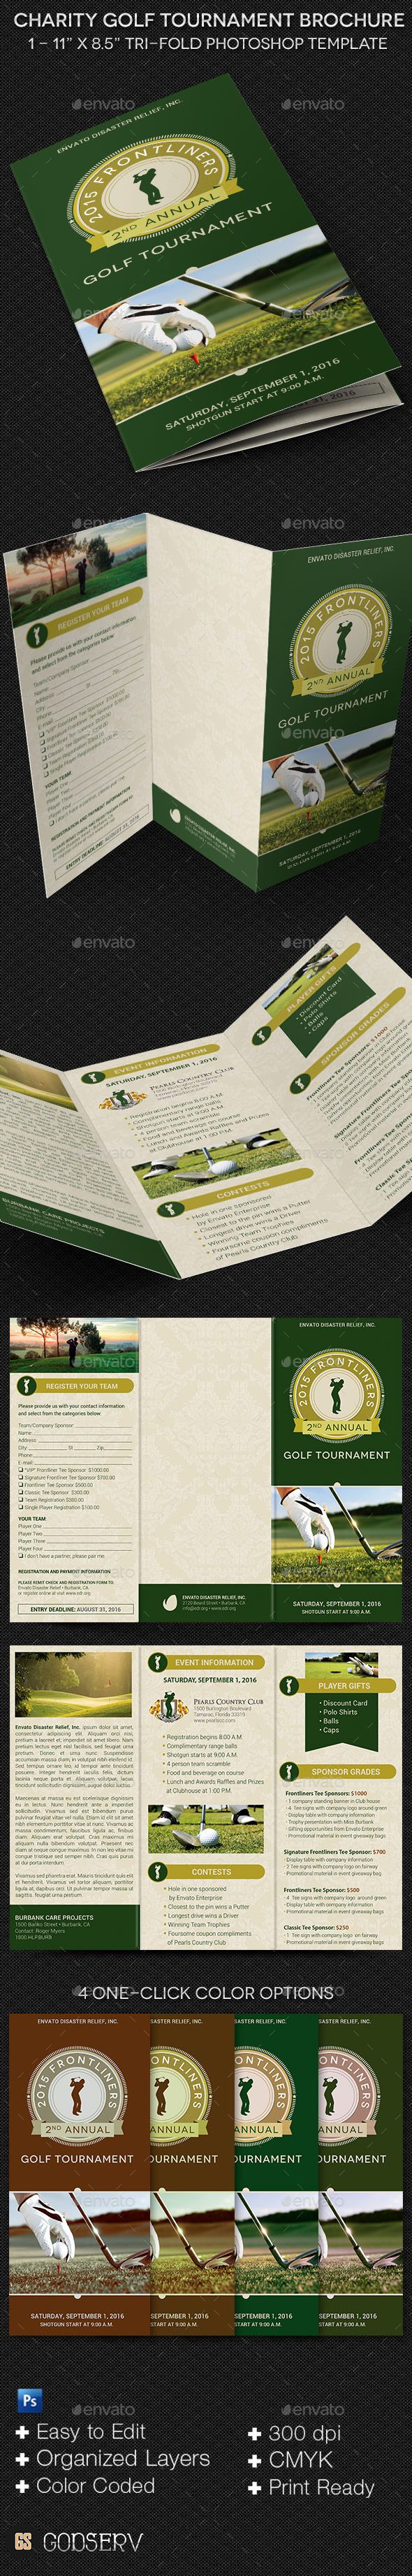 Charity Golf Tournament Brochure Template